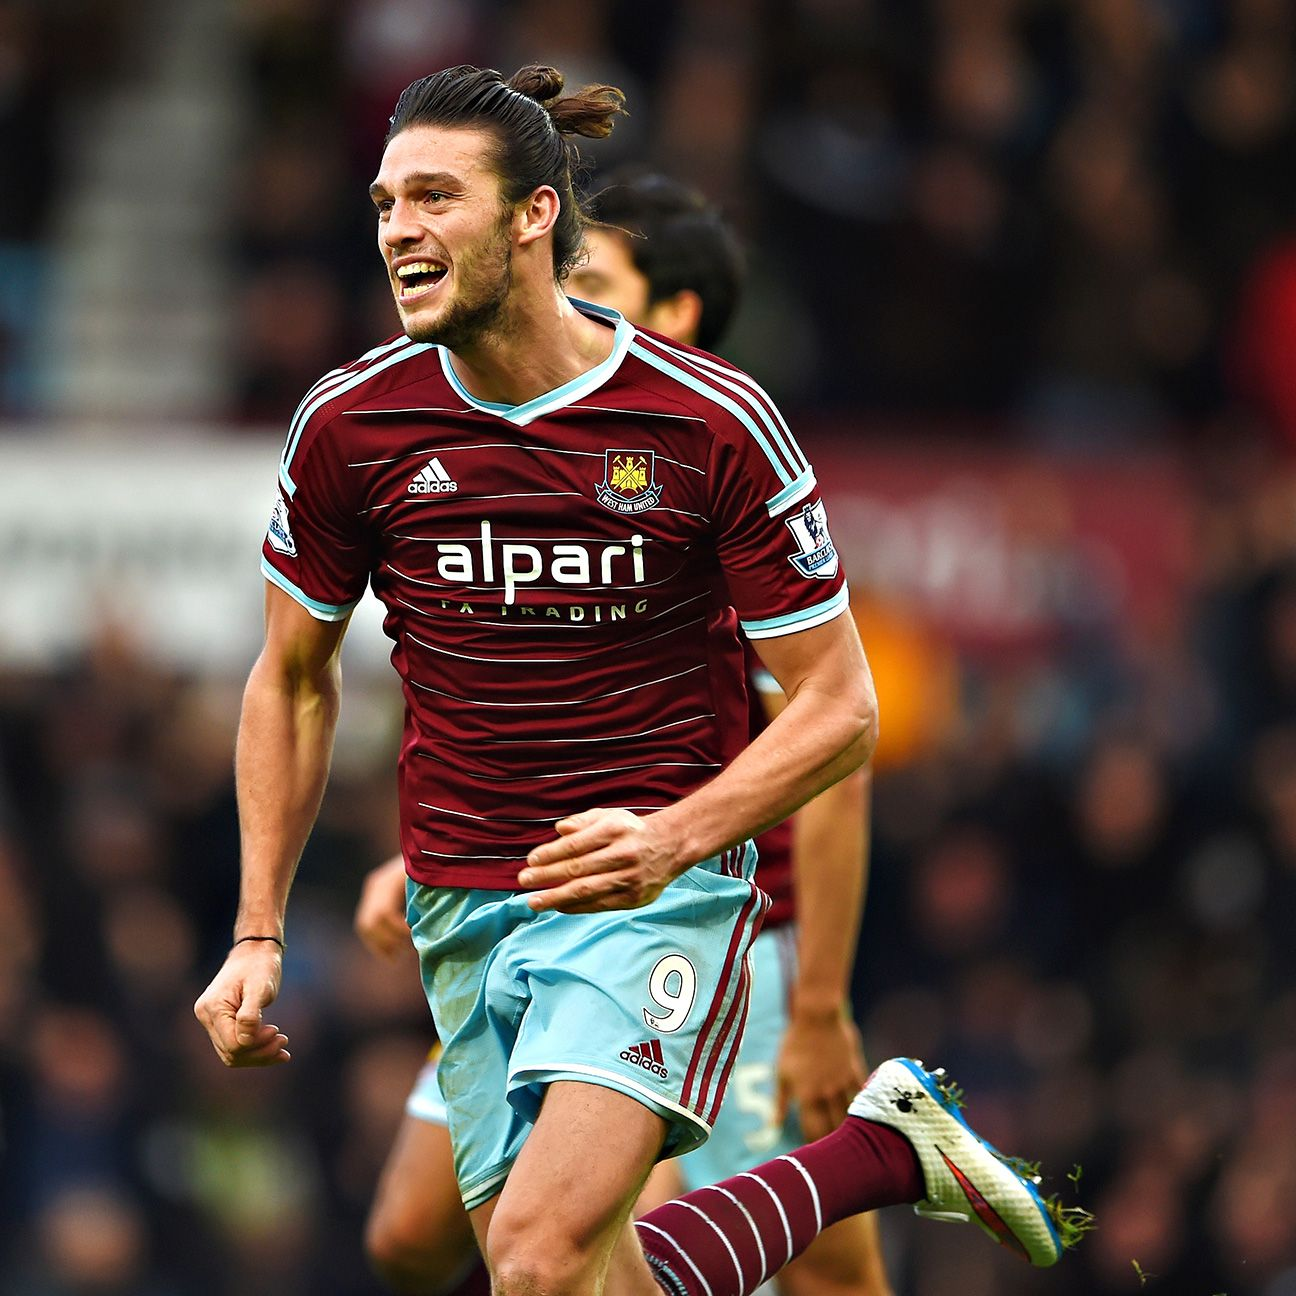 Andy Carroll and West Ham will look to return to their winning ways at home this weekend versus Leicester City.